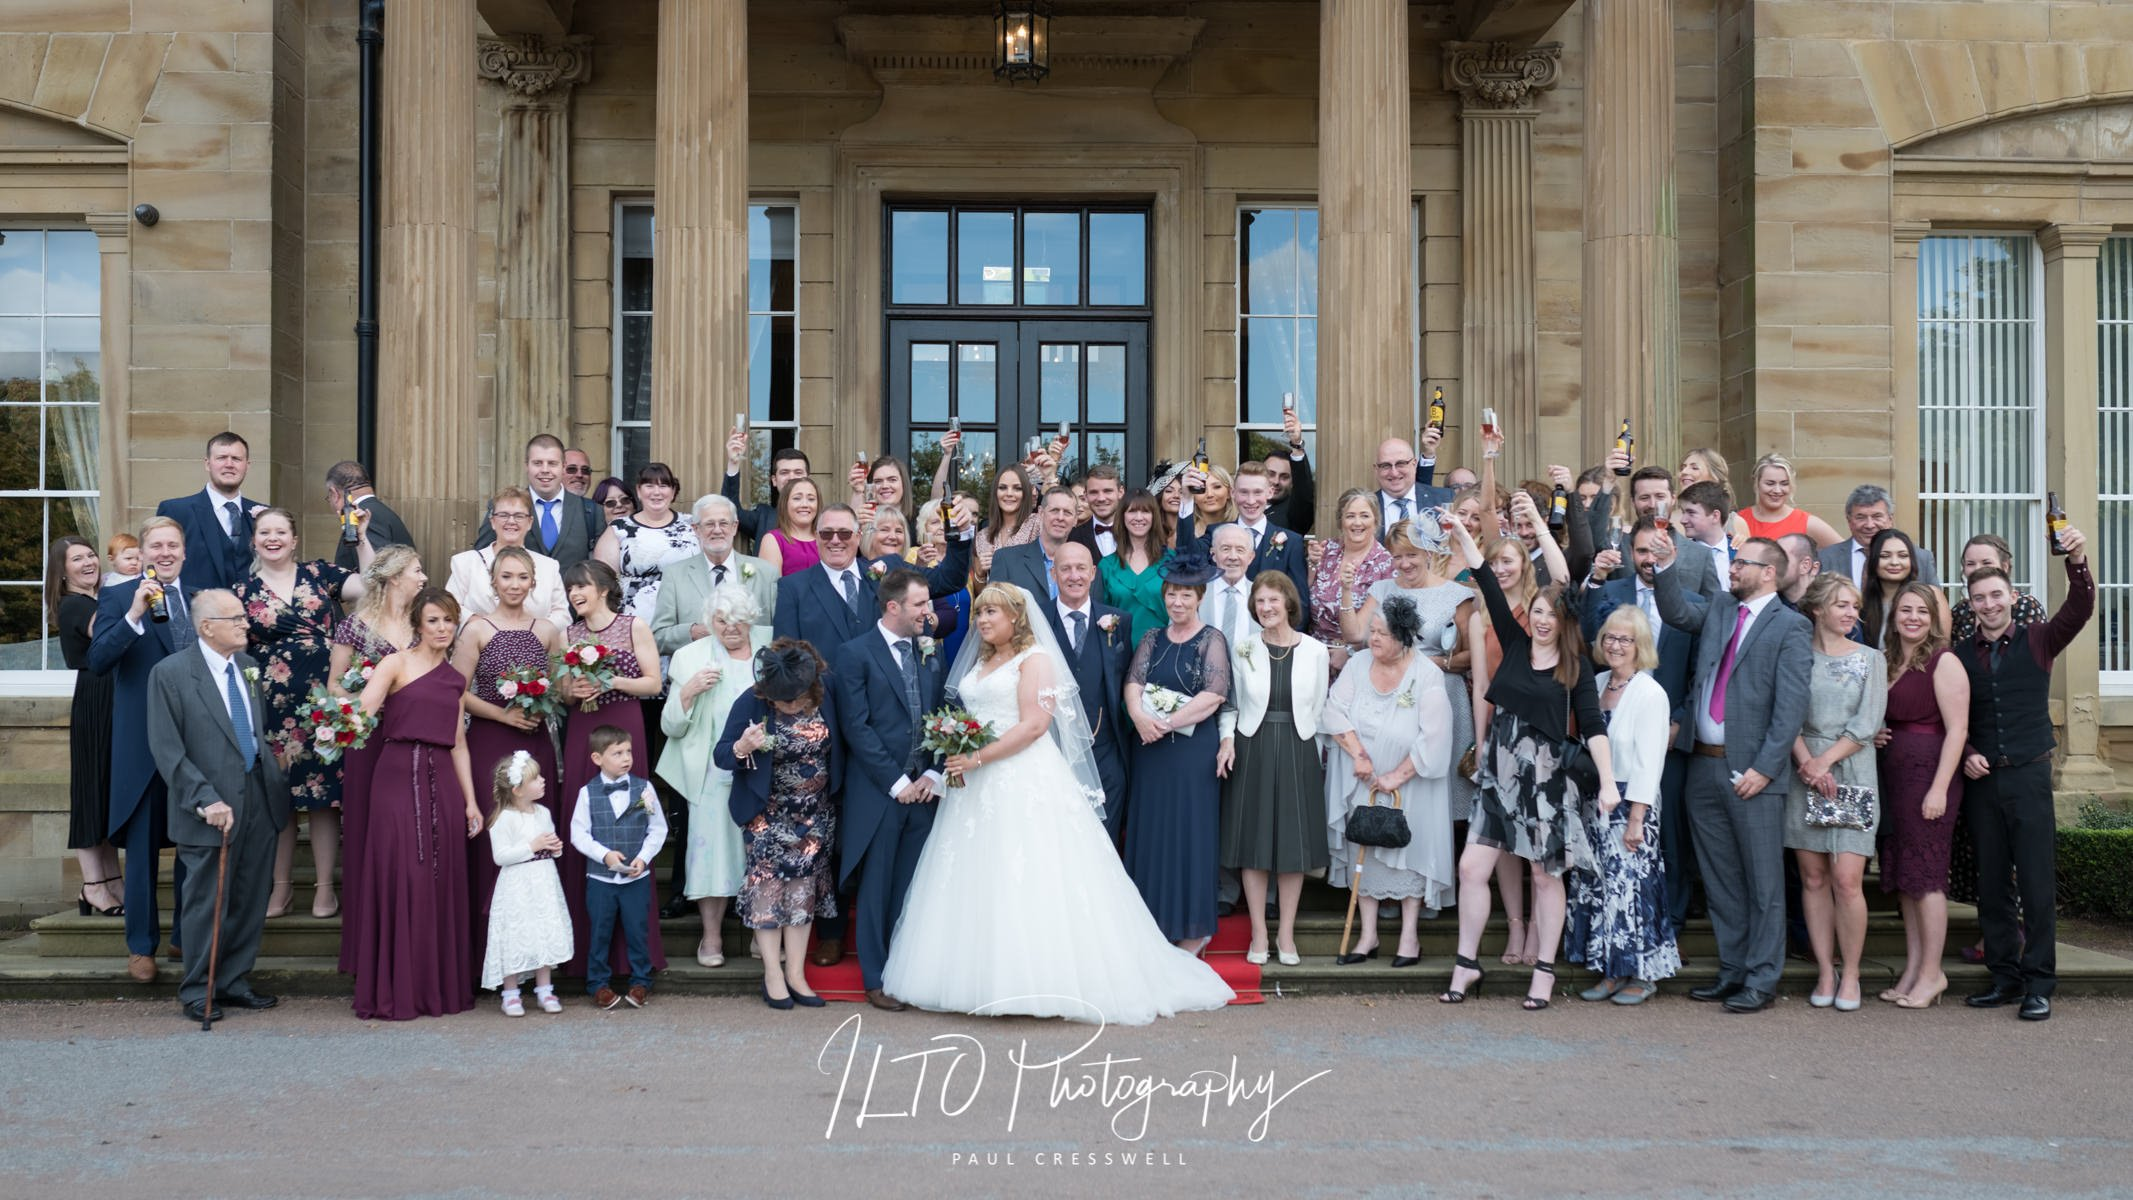 Oulton Hall Wedding Photographer 2019 wedding portfolio Leeds photographer